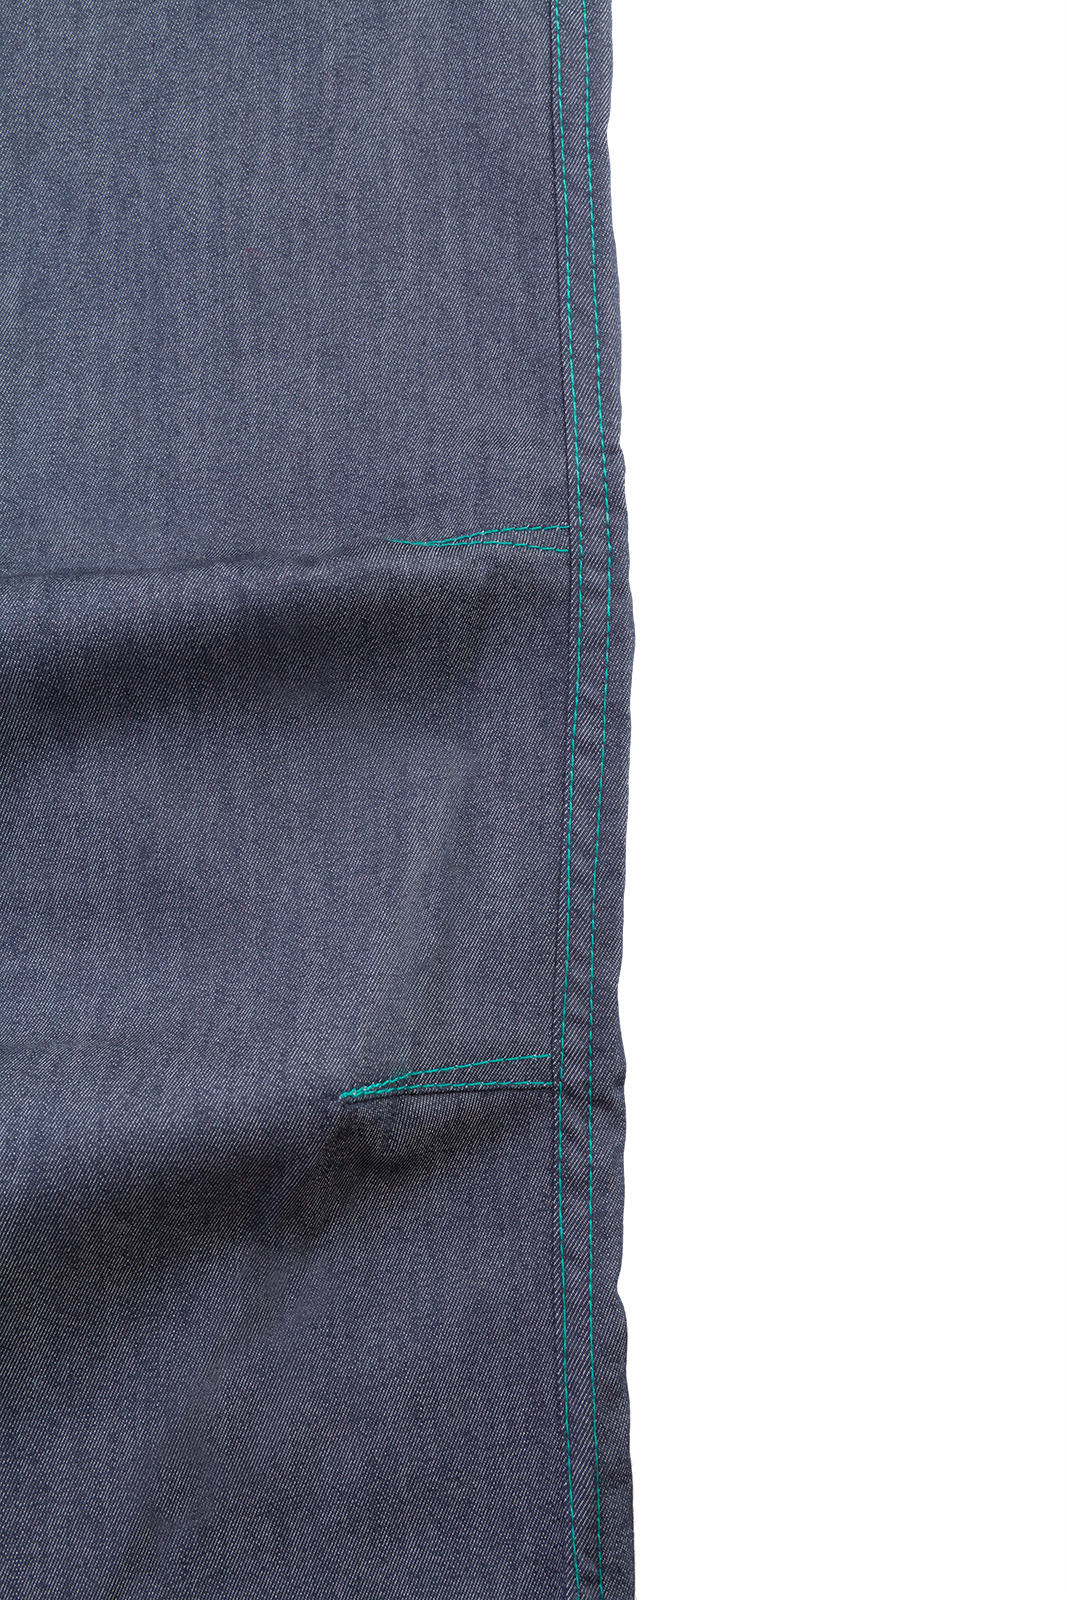 woman climbing jeans contrast turquoise stitching VIOLET Monvic